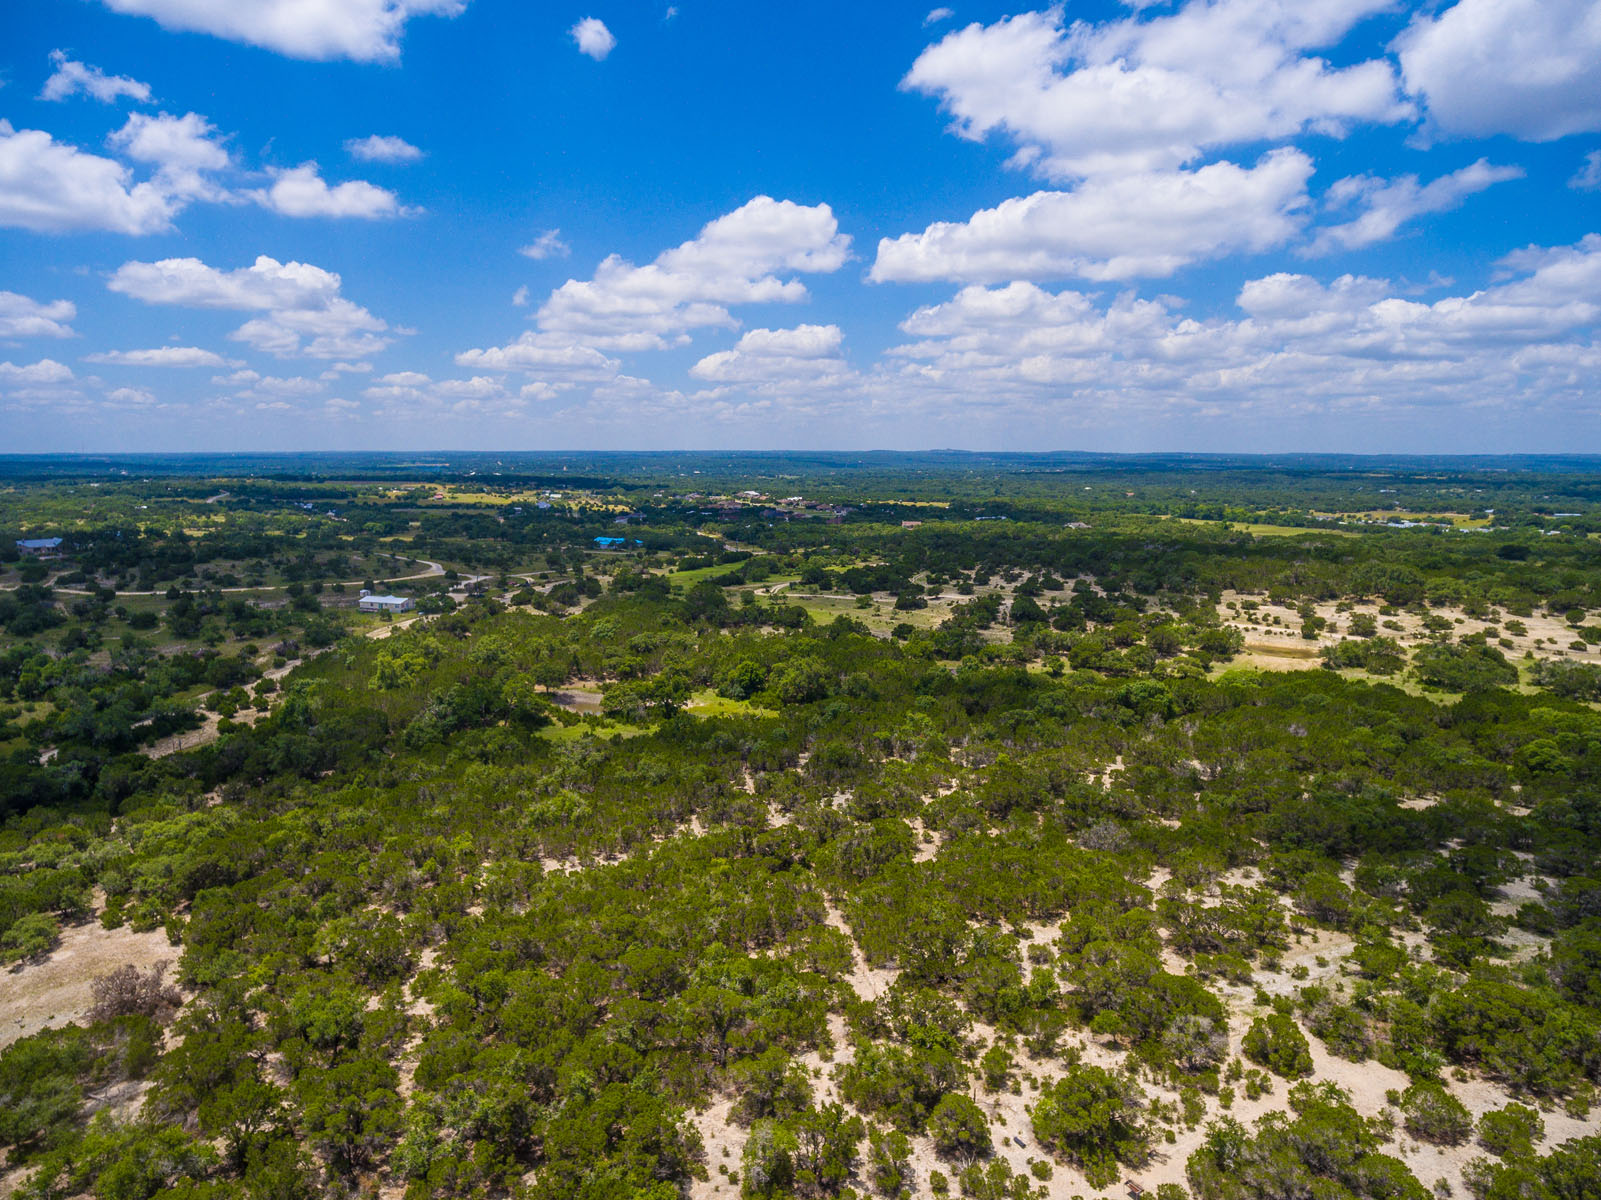 Farm / Ranch / Plantation for Sale at Prime Location with Panoramic Views 400 S Canyonwood Dr Dripping Springs, Texas 78620 United States